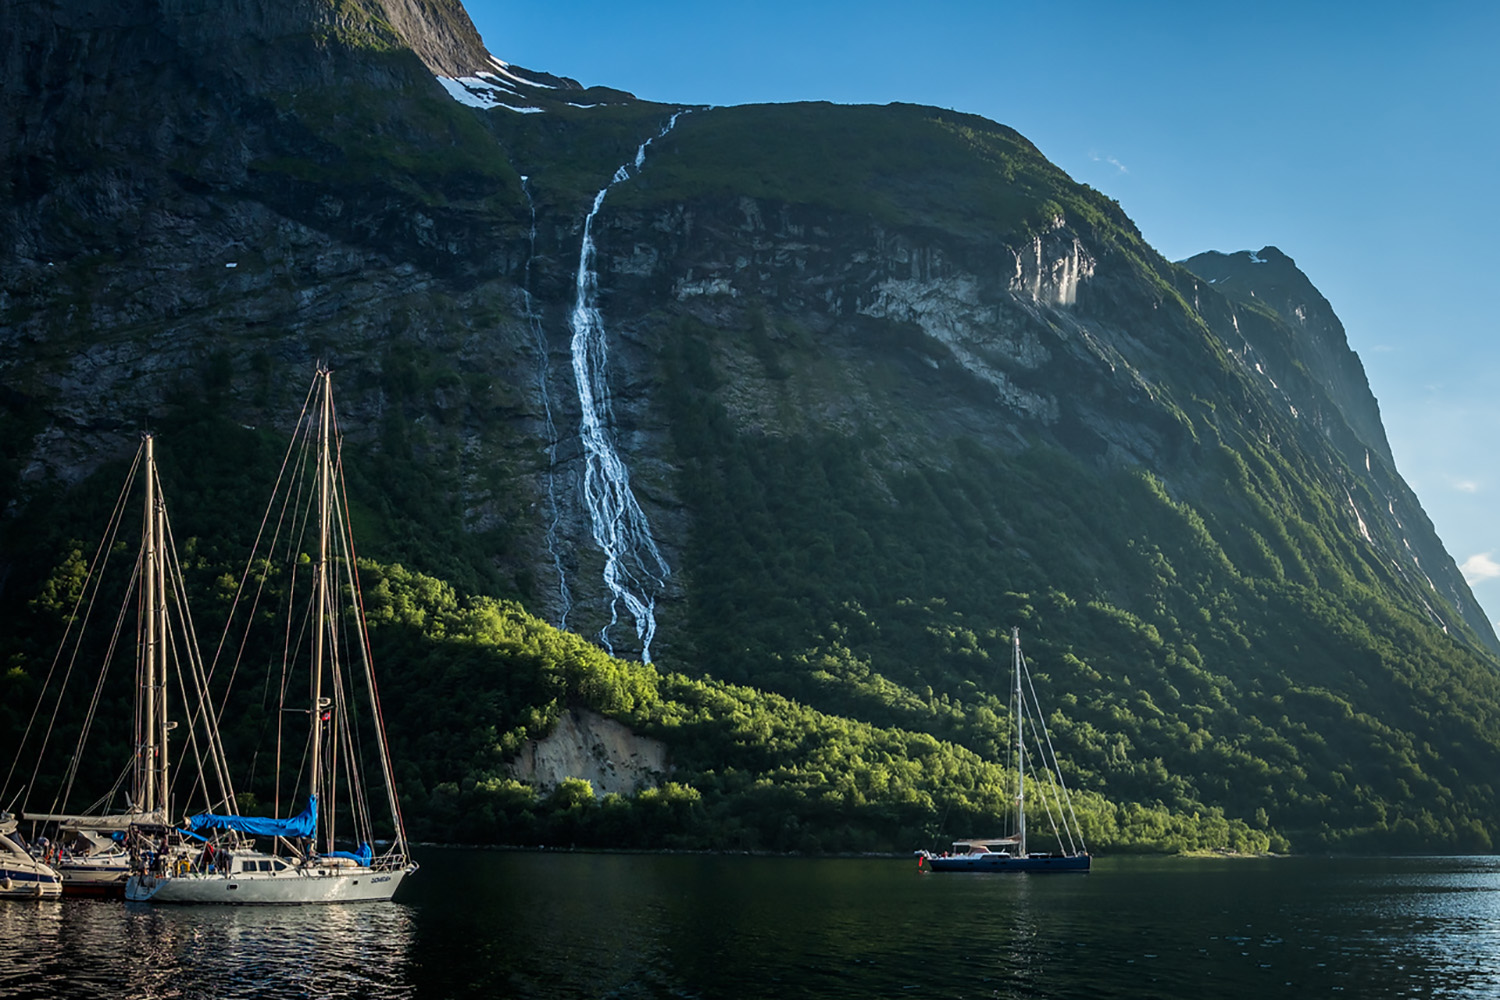 fjords-sailing-Adventure-Travel-Norway-kopi.jpg